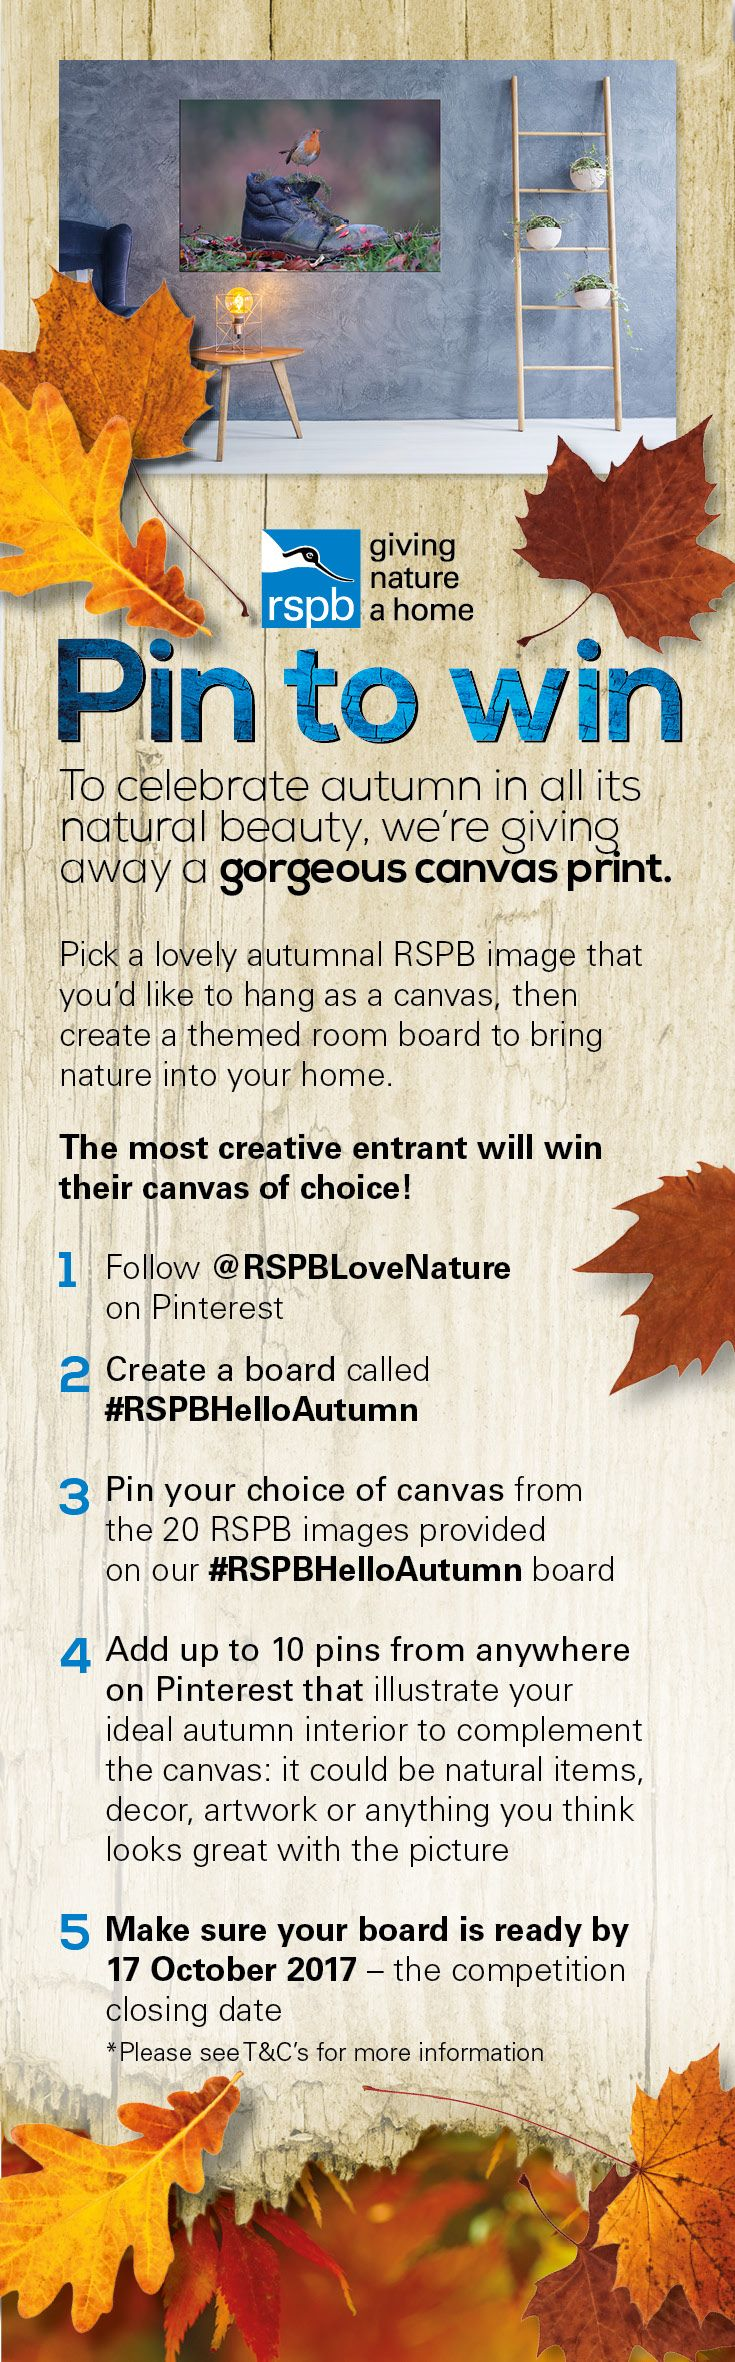 Pin to Win a gorgeous canvas print worth up to £200 – simply create a board called #RSPBHelloAutumn, pin your choice of canvas from the 20 autumnal images provided on our #RSPBHelloAutumn board and then add in 10 or more pins that illustrate your ideal autumn interior. Closing date 17/10/2017. 2017, Contest, Fun, Photography, Home Inspiration, Giveaway, Competition, Prizes, Autumn, Decor